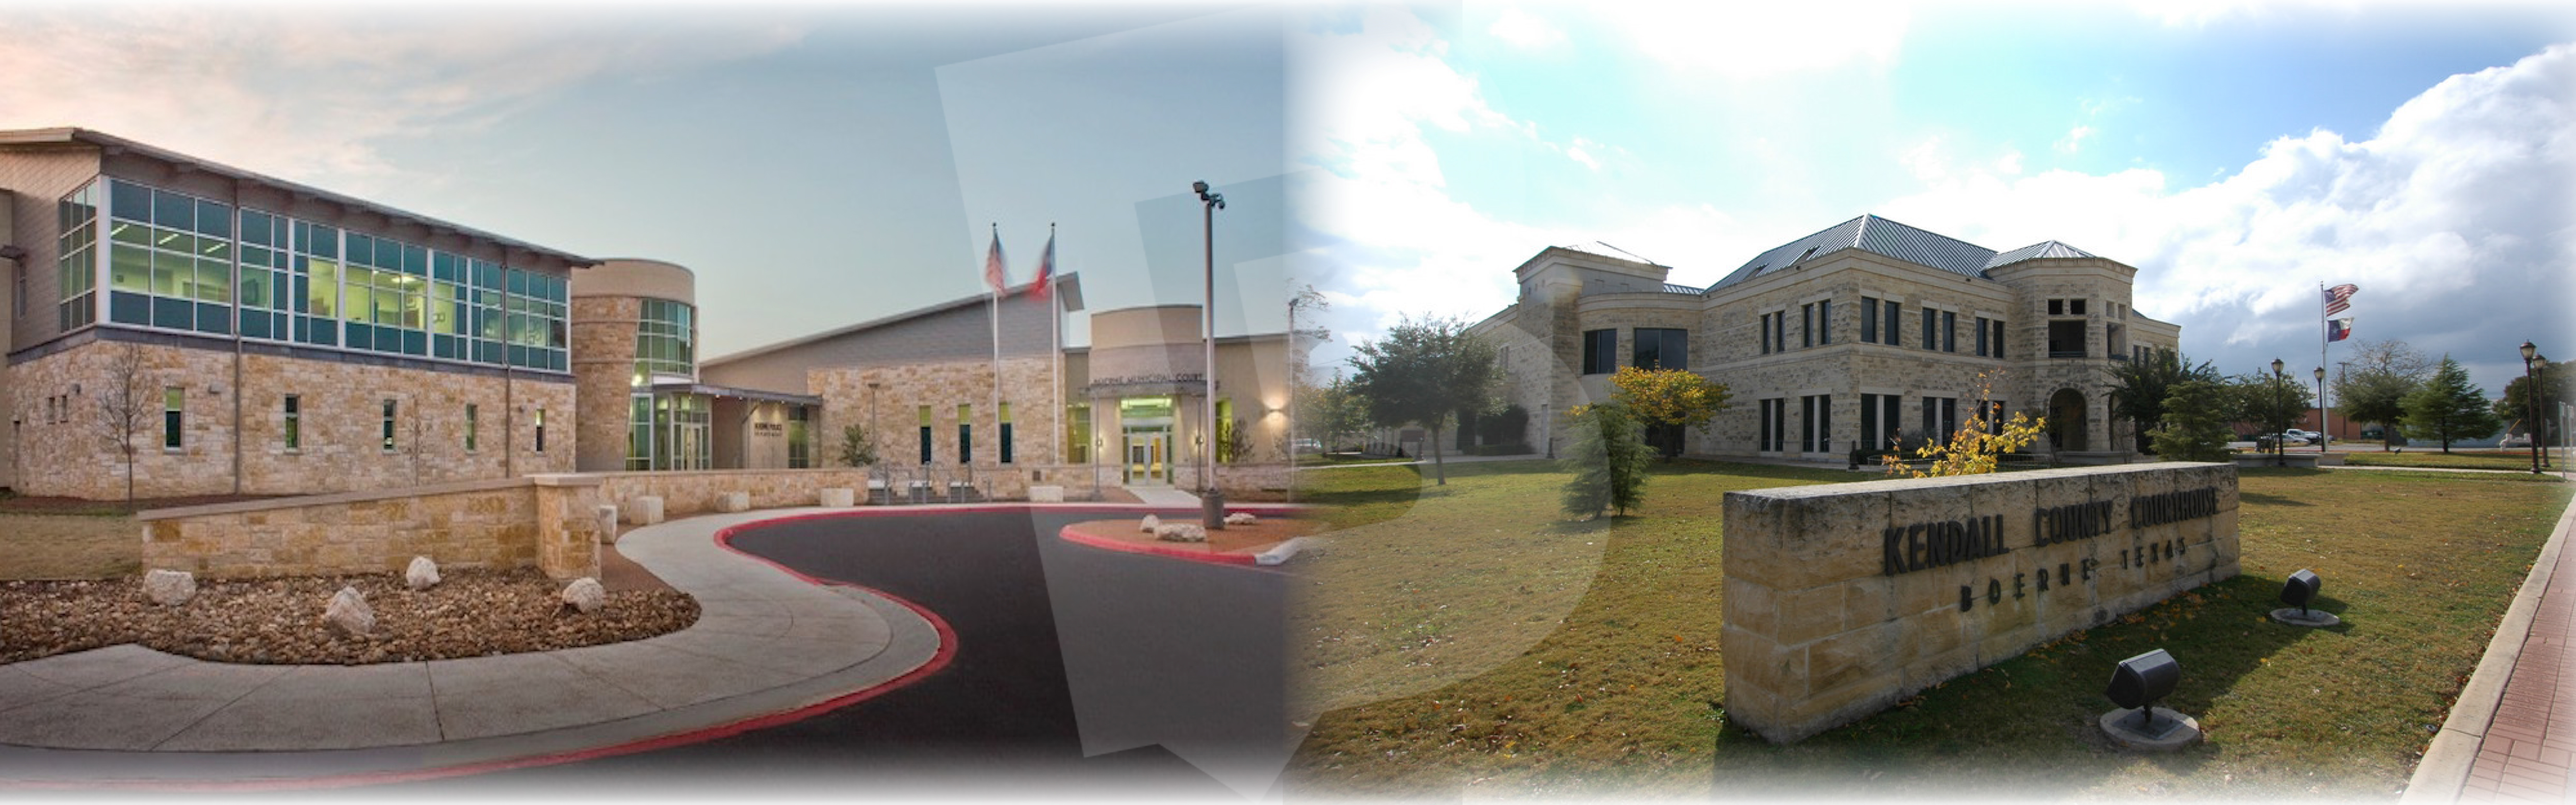 Boerne City Chambers and KC Courthouse